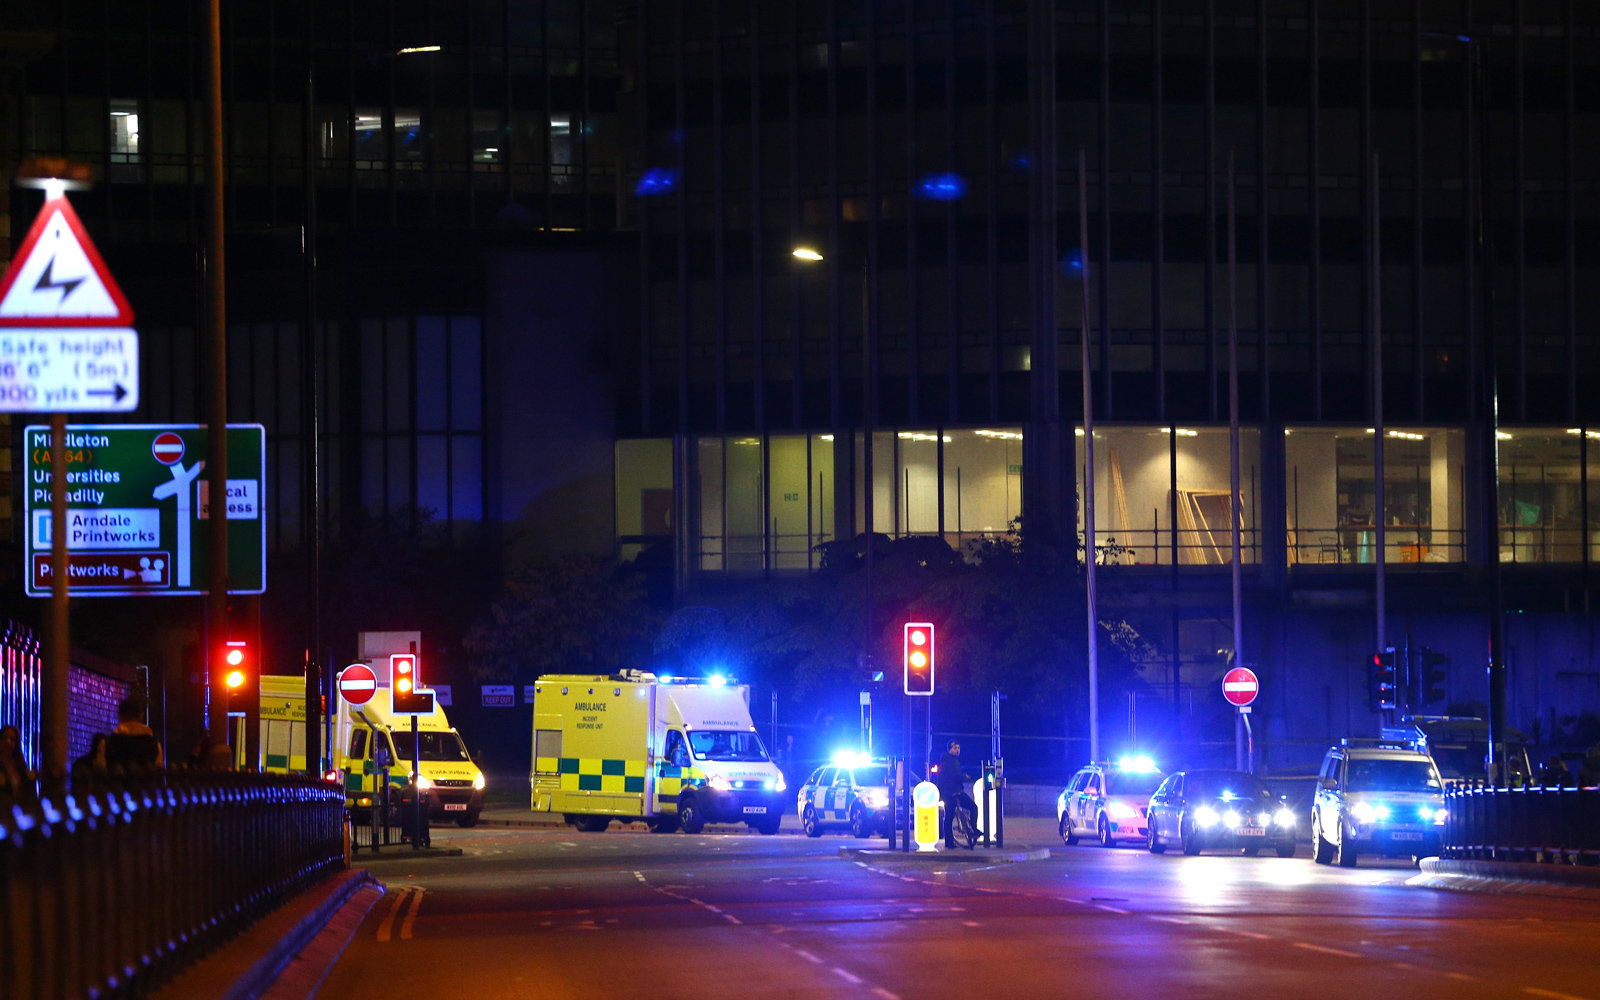 Police and medics respond to an explosion at Manchester Arena after an Ariana Grande concert on May 22, 2017.